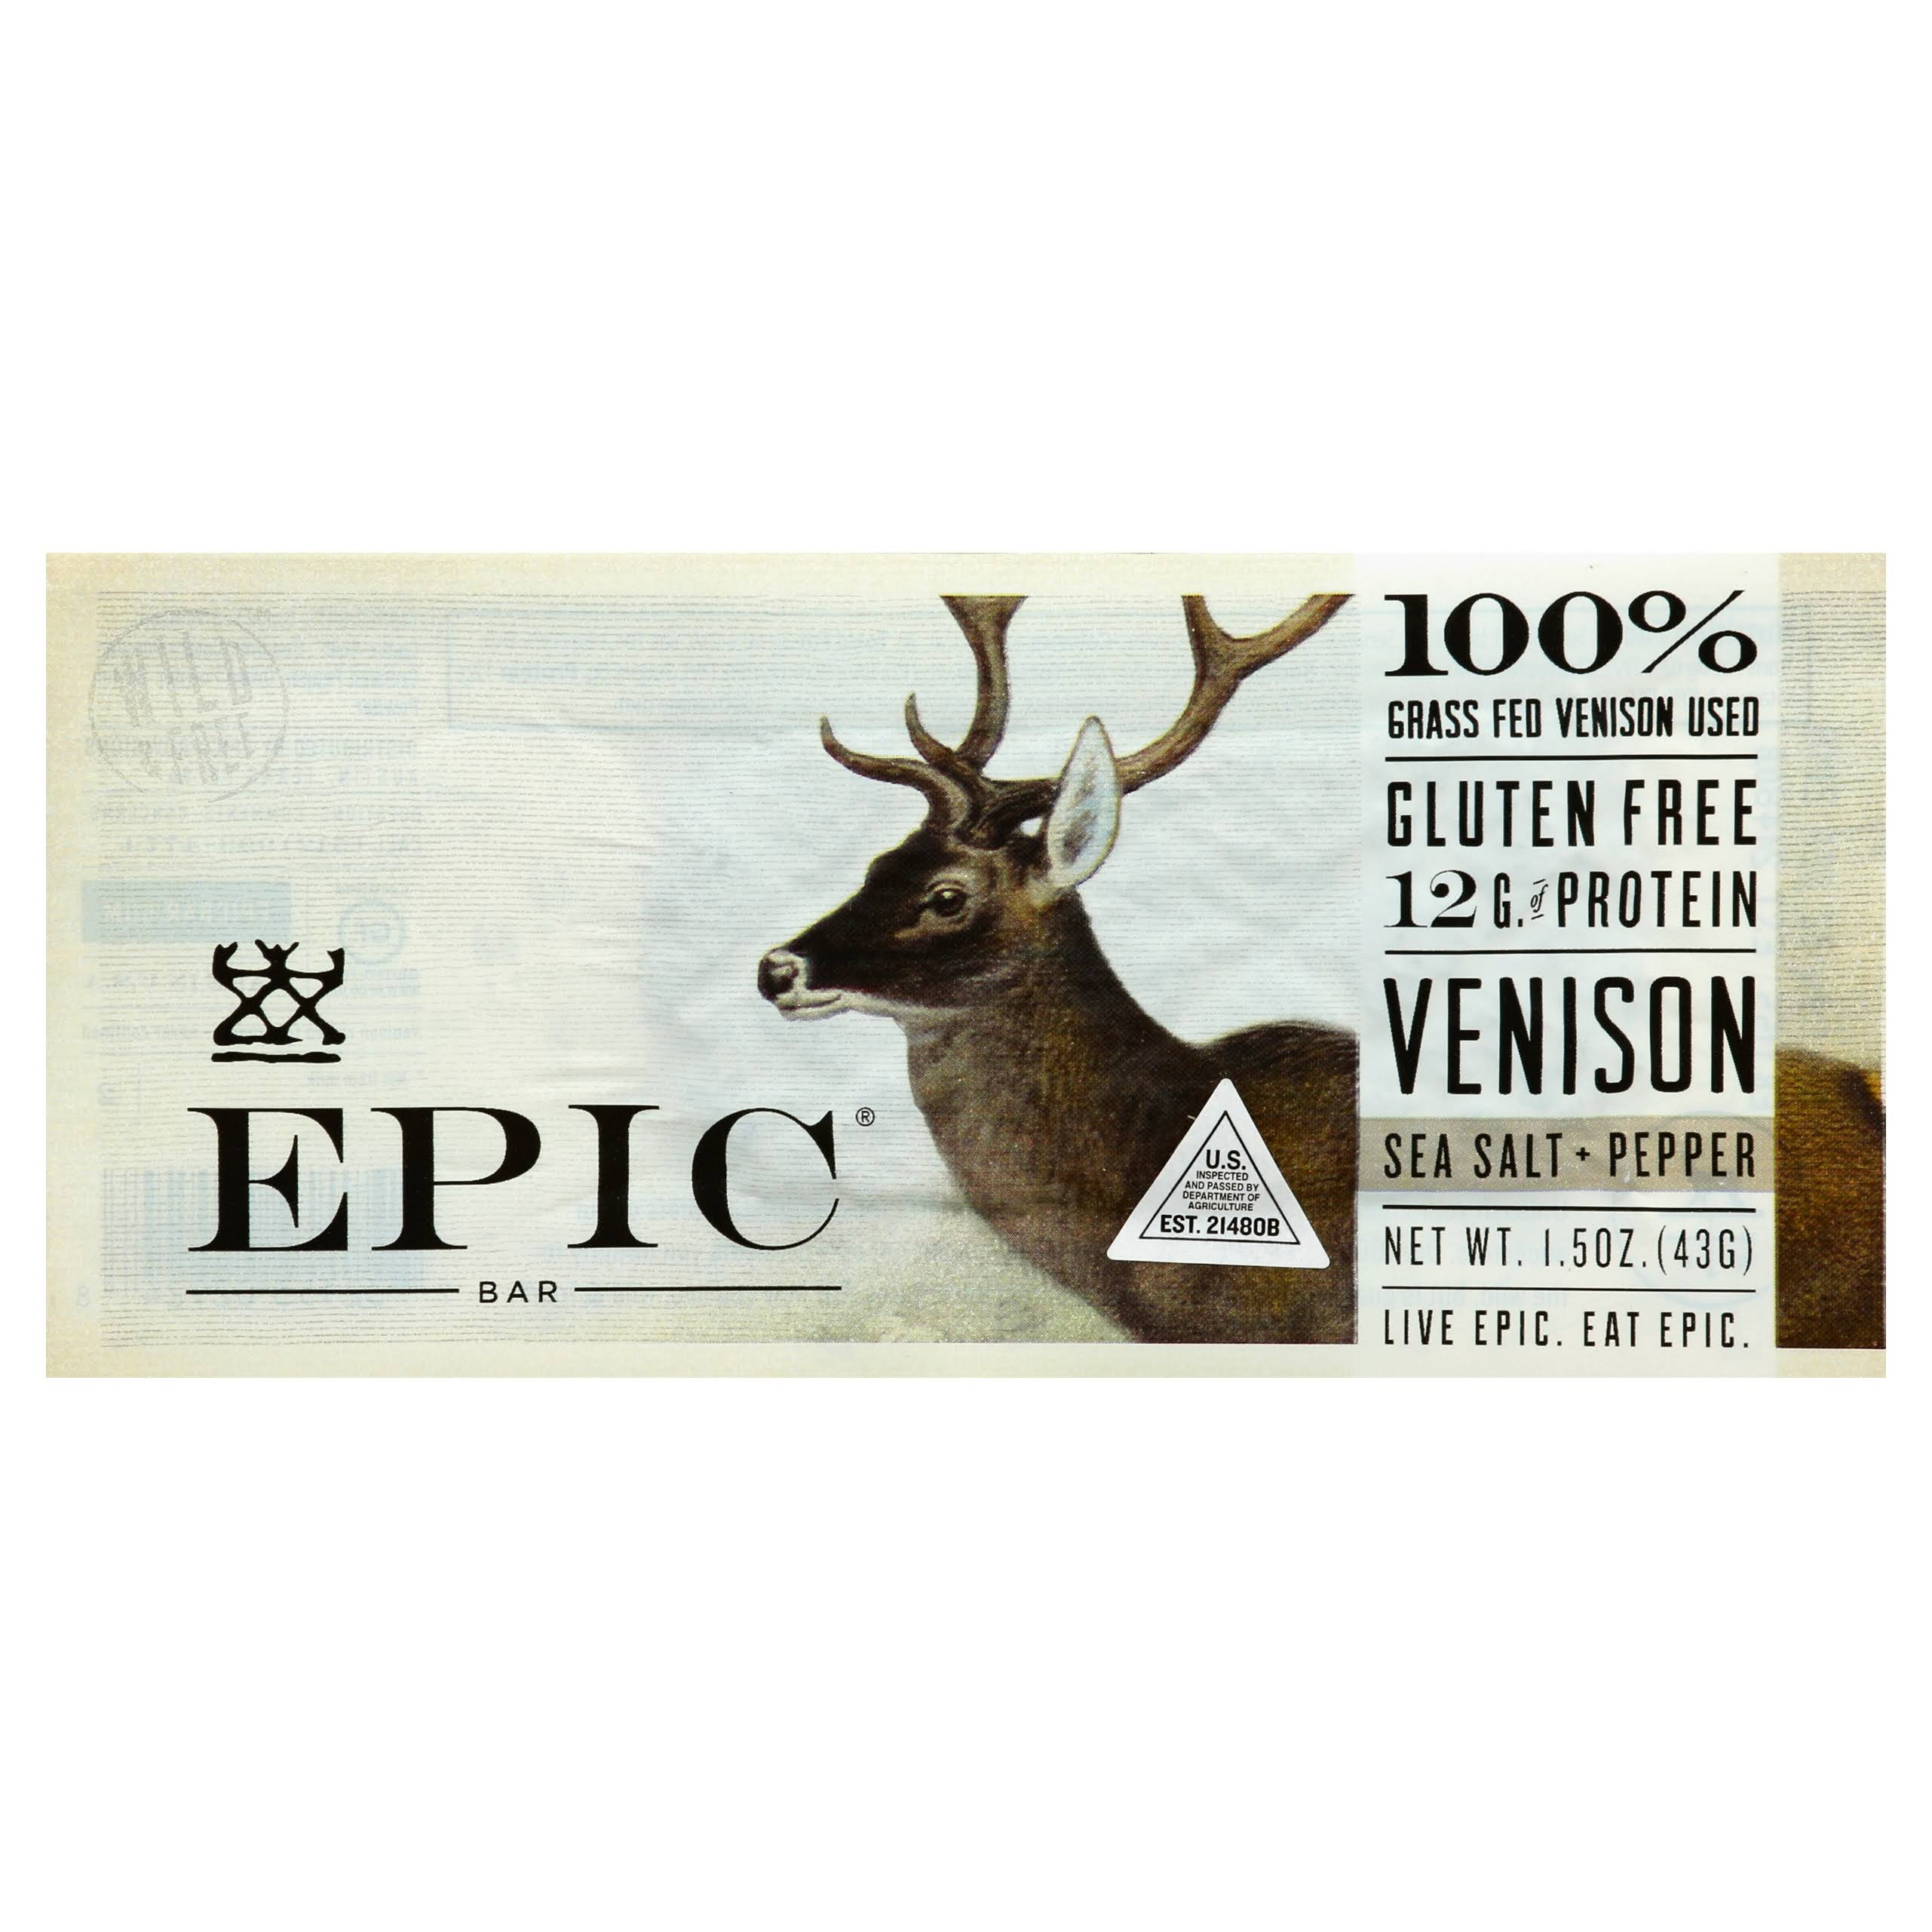 Epic Bar, Venison, Sea Salt + Pepper - 1.5 oz